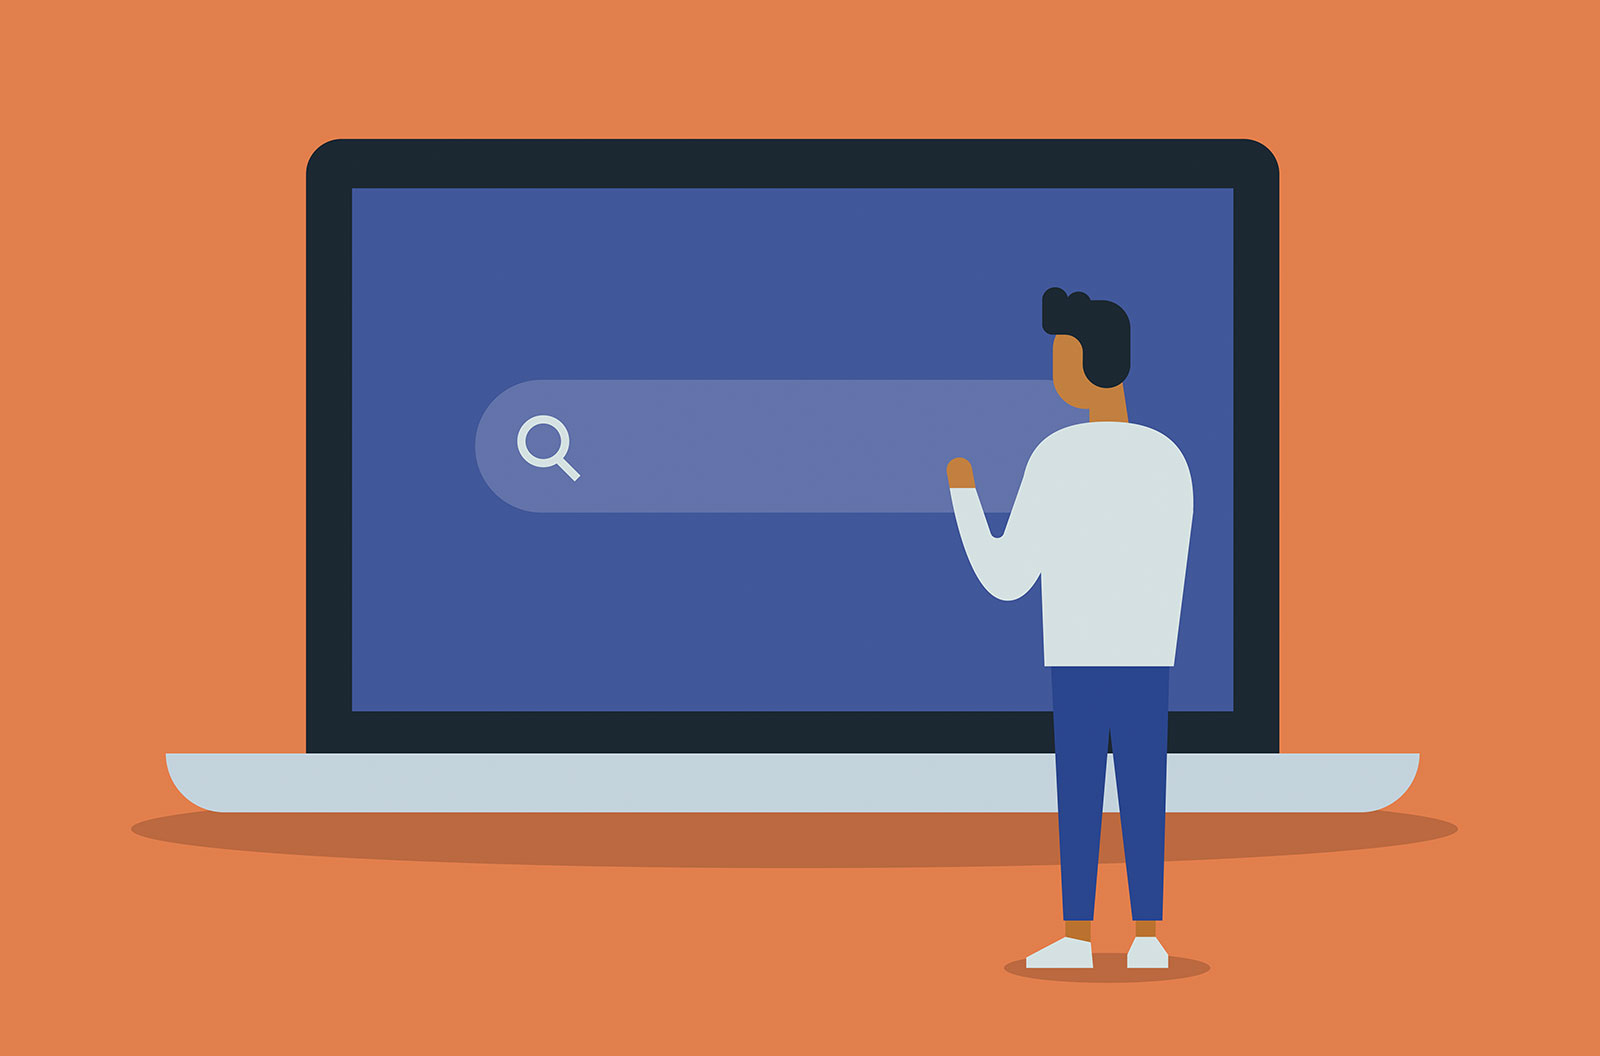 Vector illustration of young man in front of a giant laptop computer with a search bar on the screen